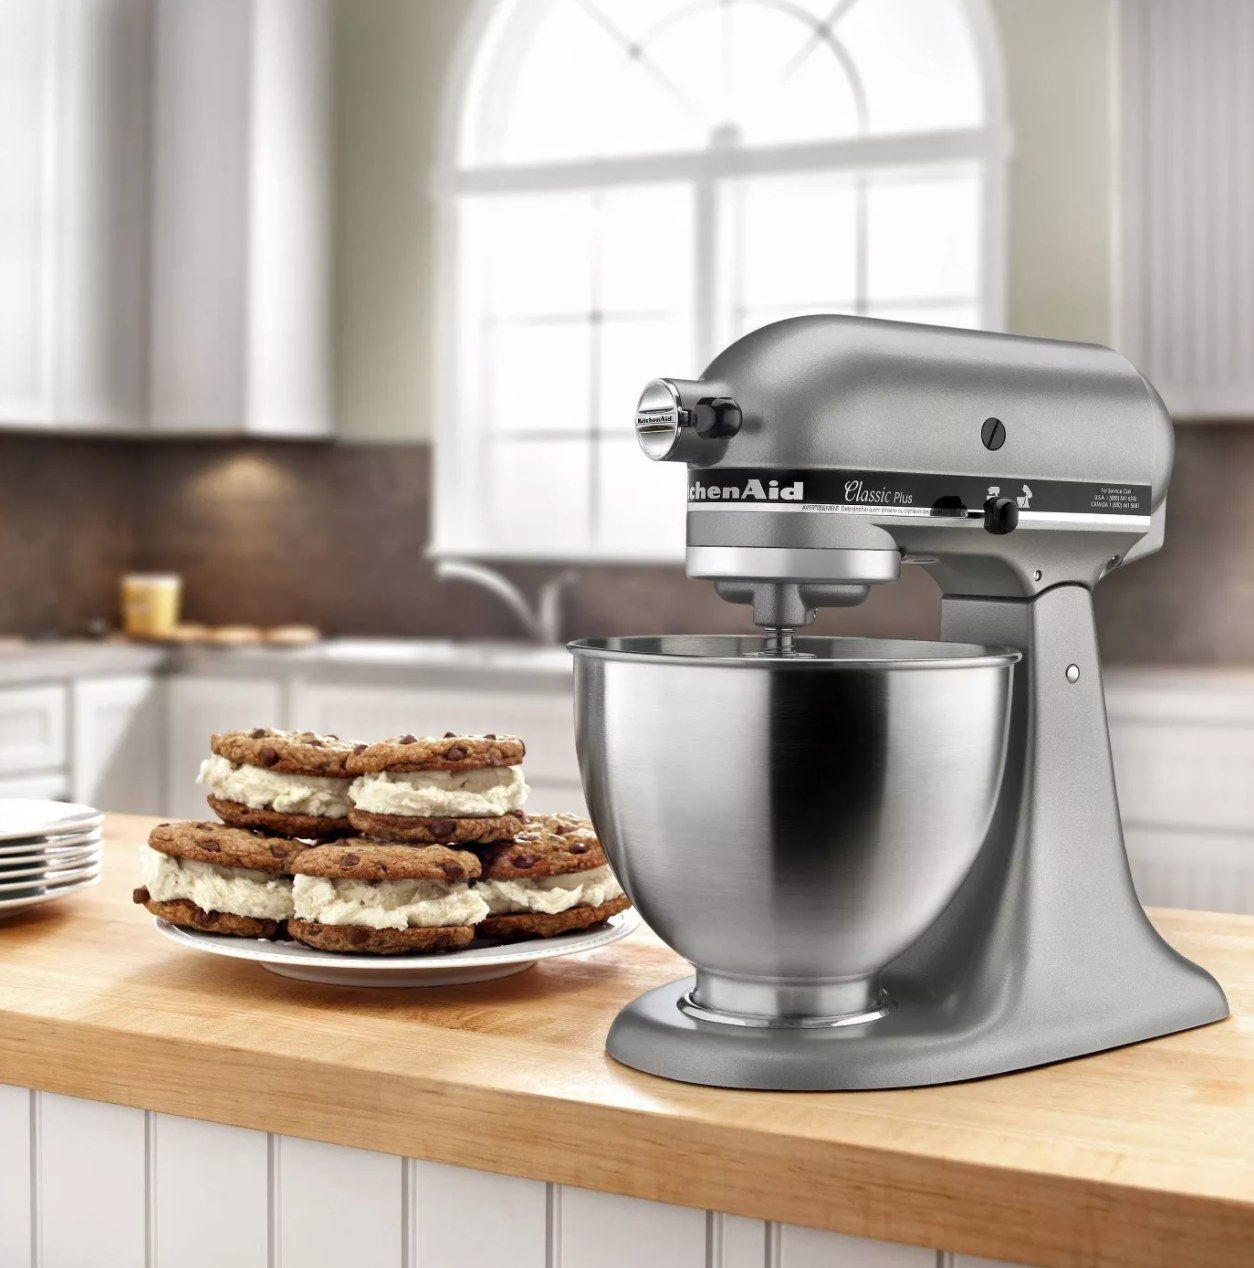 The stainless steel mixer being used to mix the ingredients for cookie sandwiches